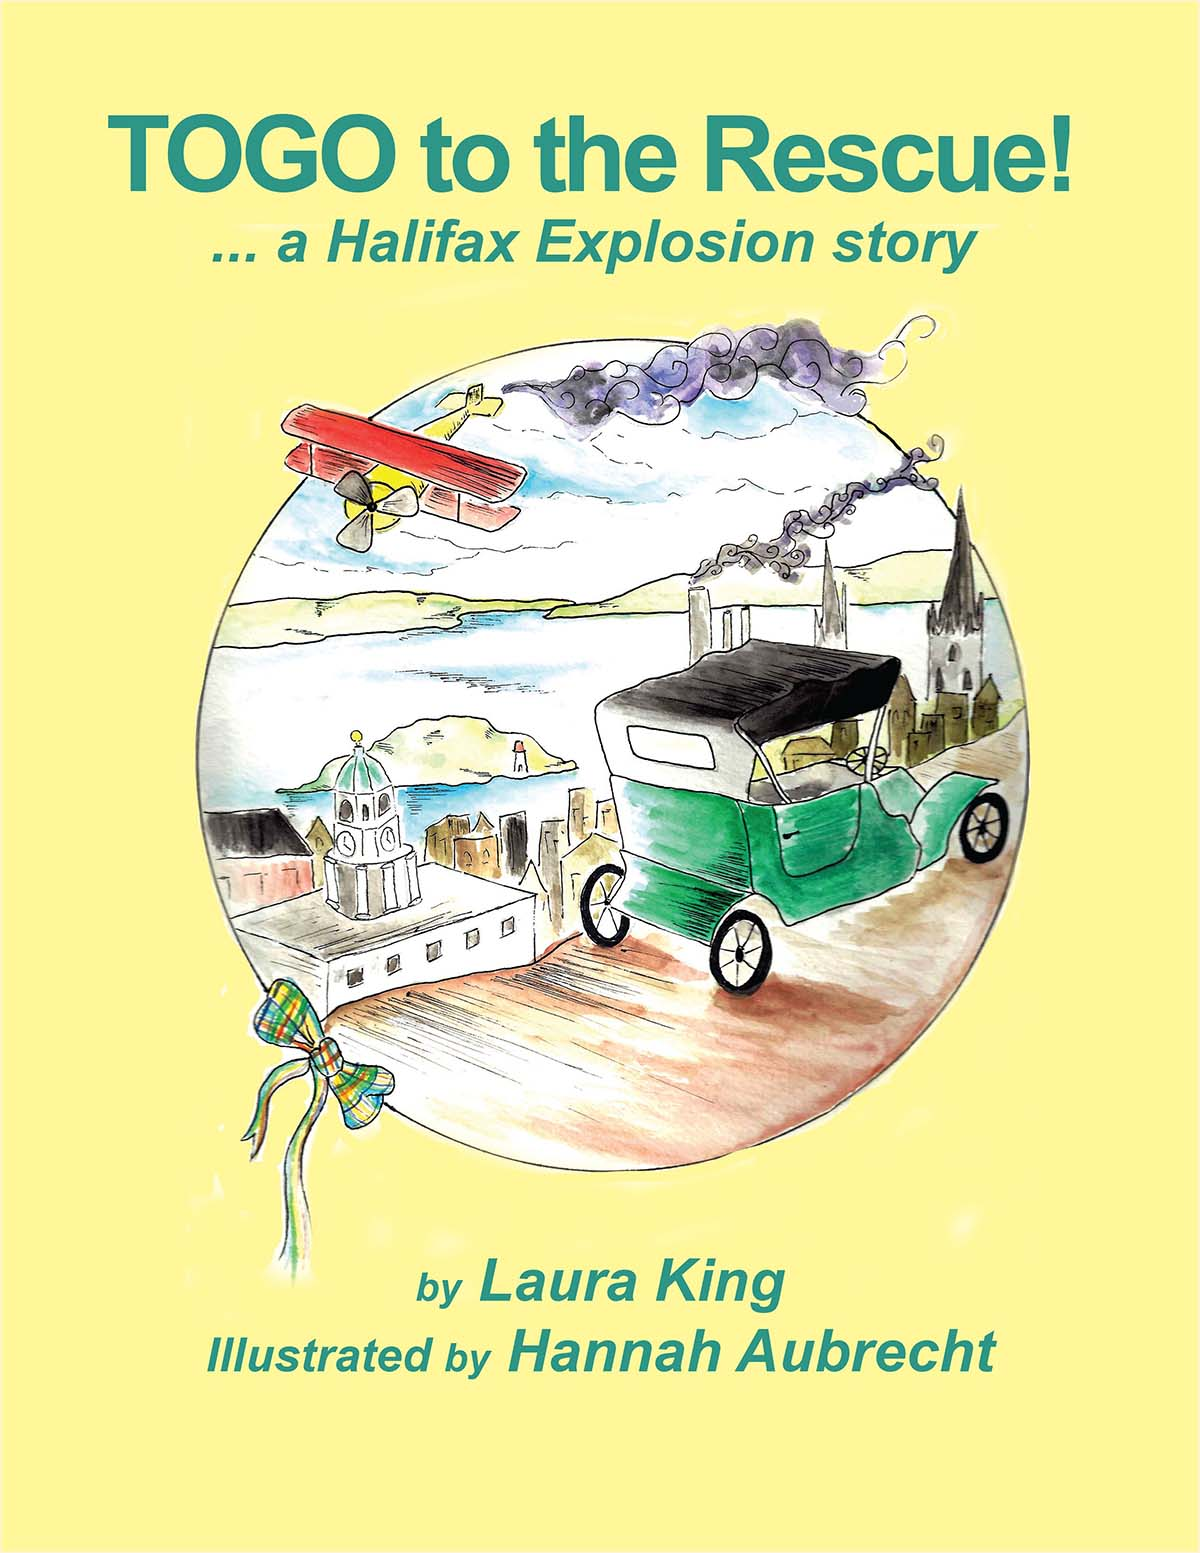 TOGO' to the rescue – a Halifax Explosion Story